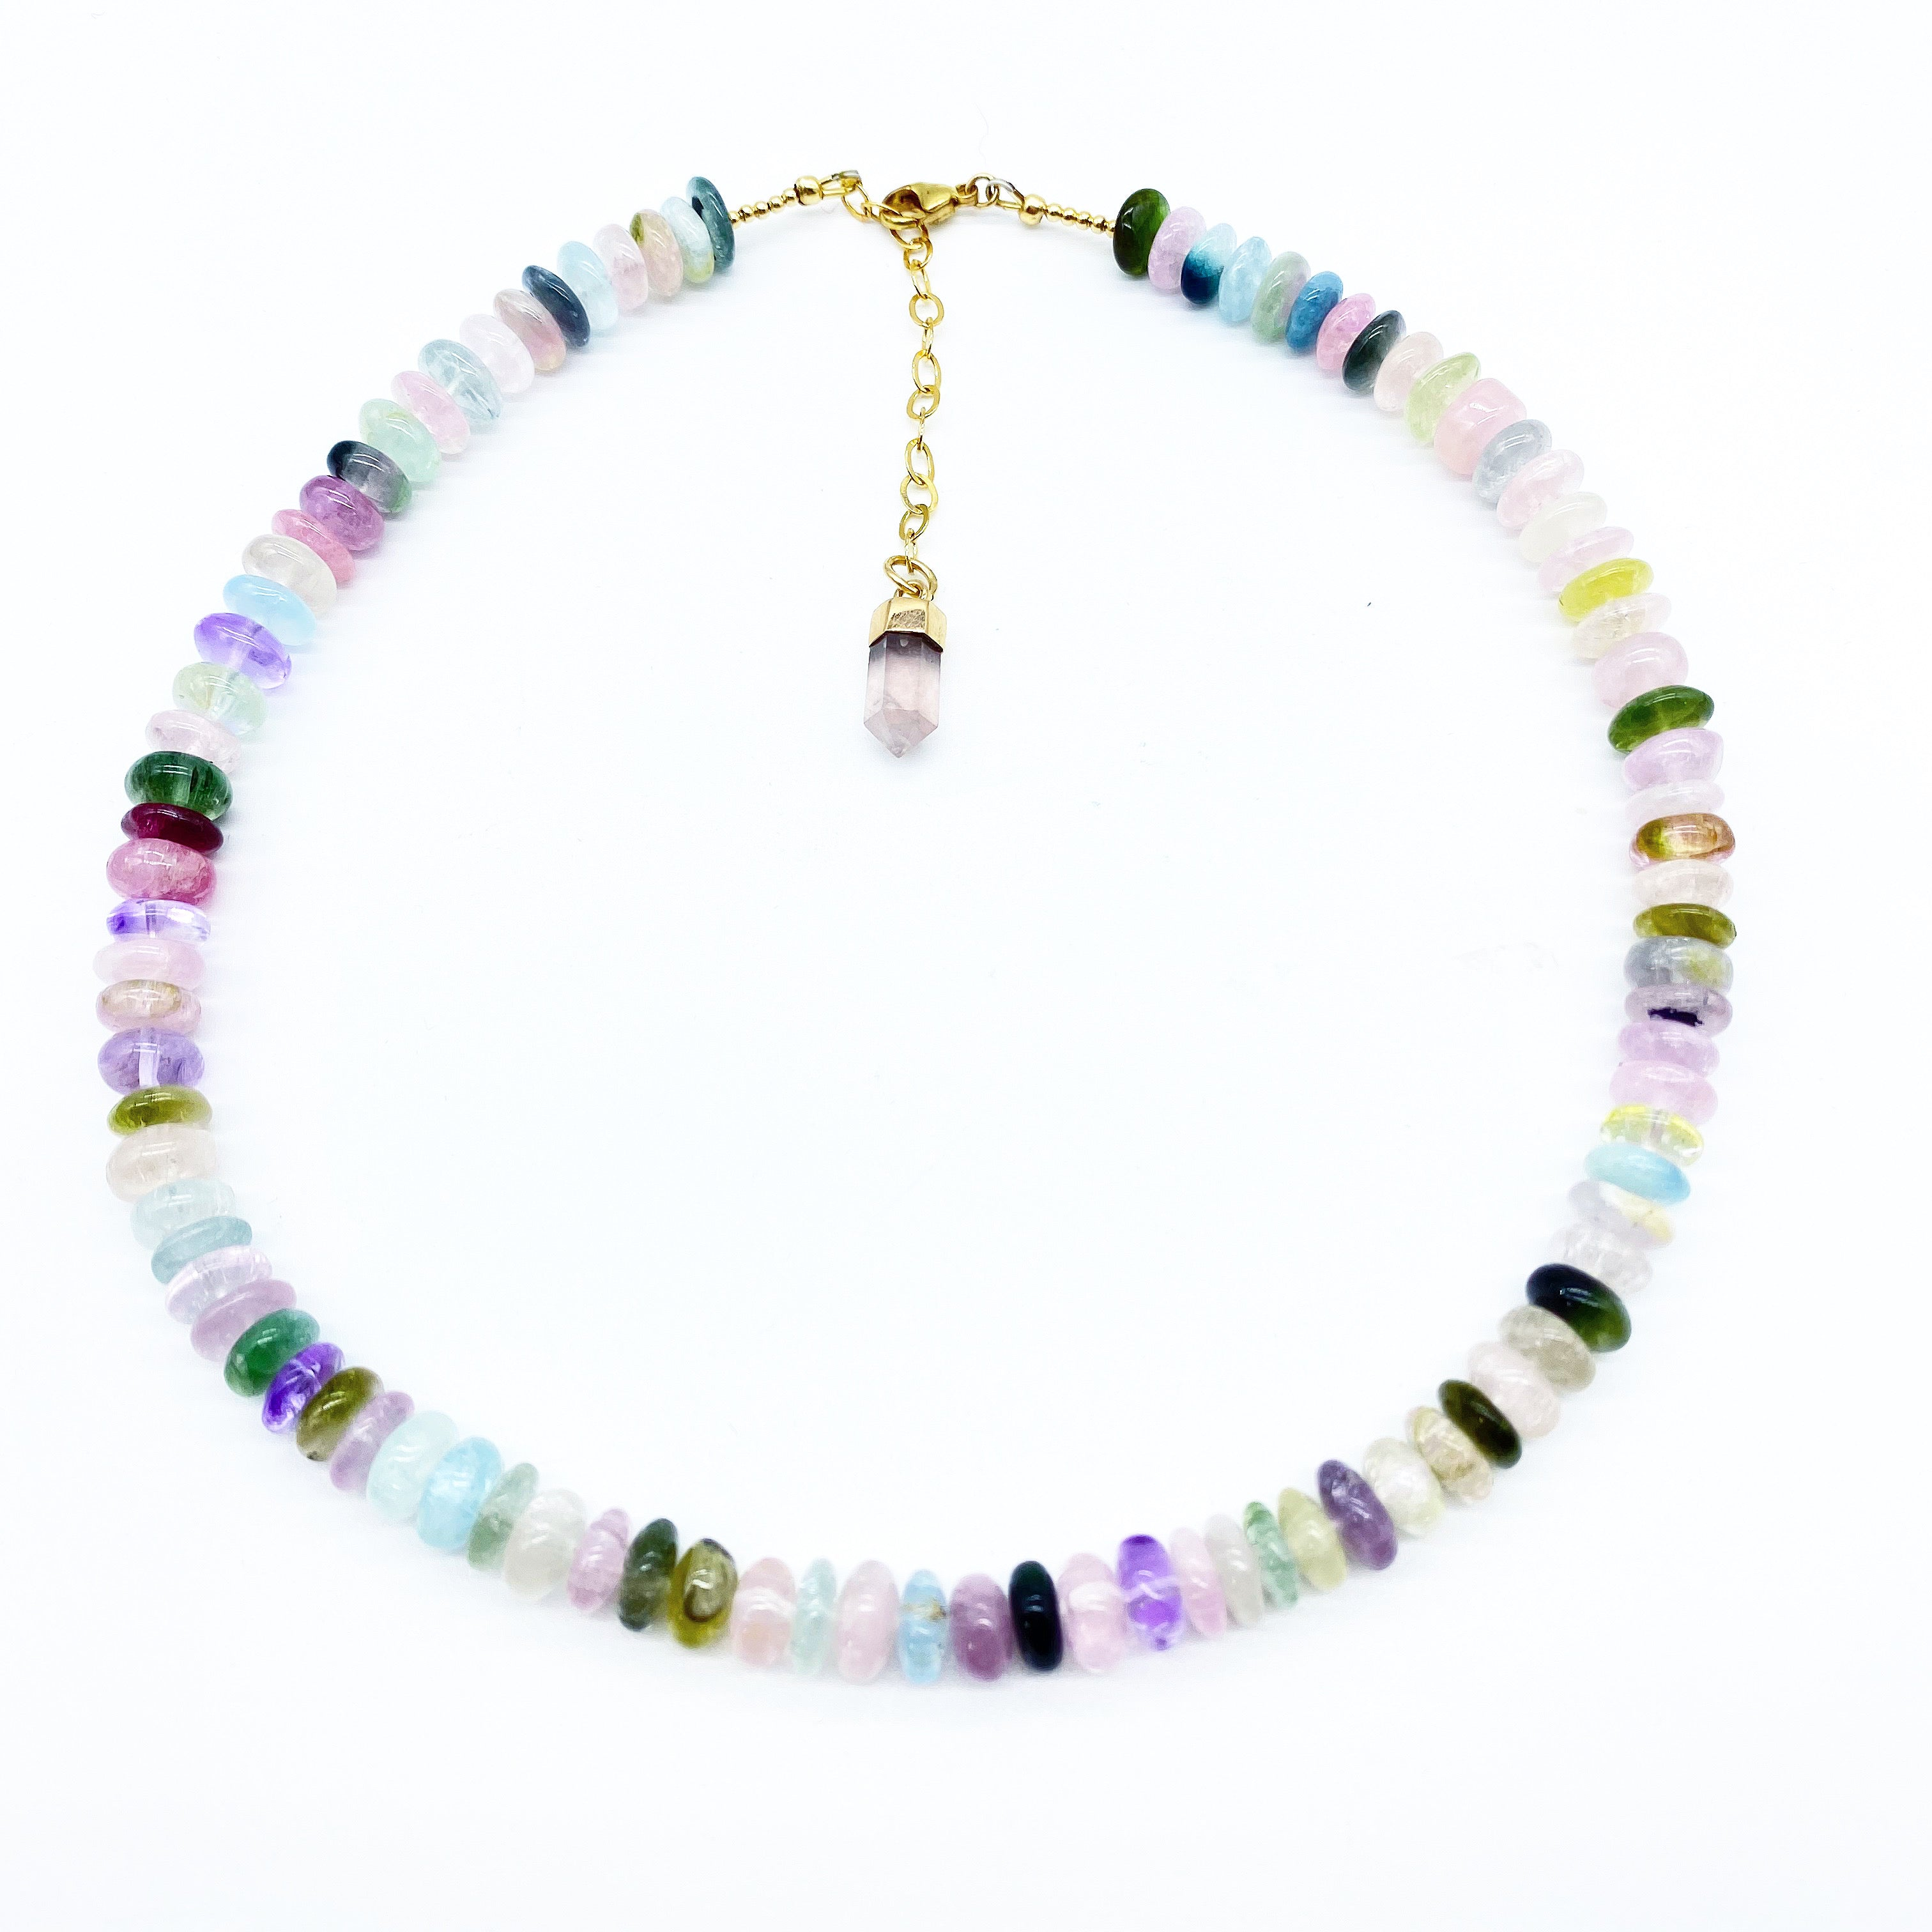 TOURMALINE CRYSTAL NECKLACE